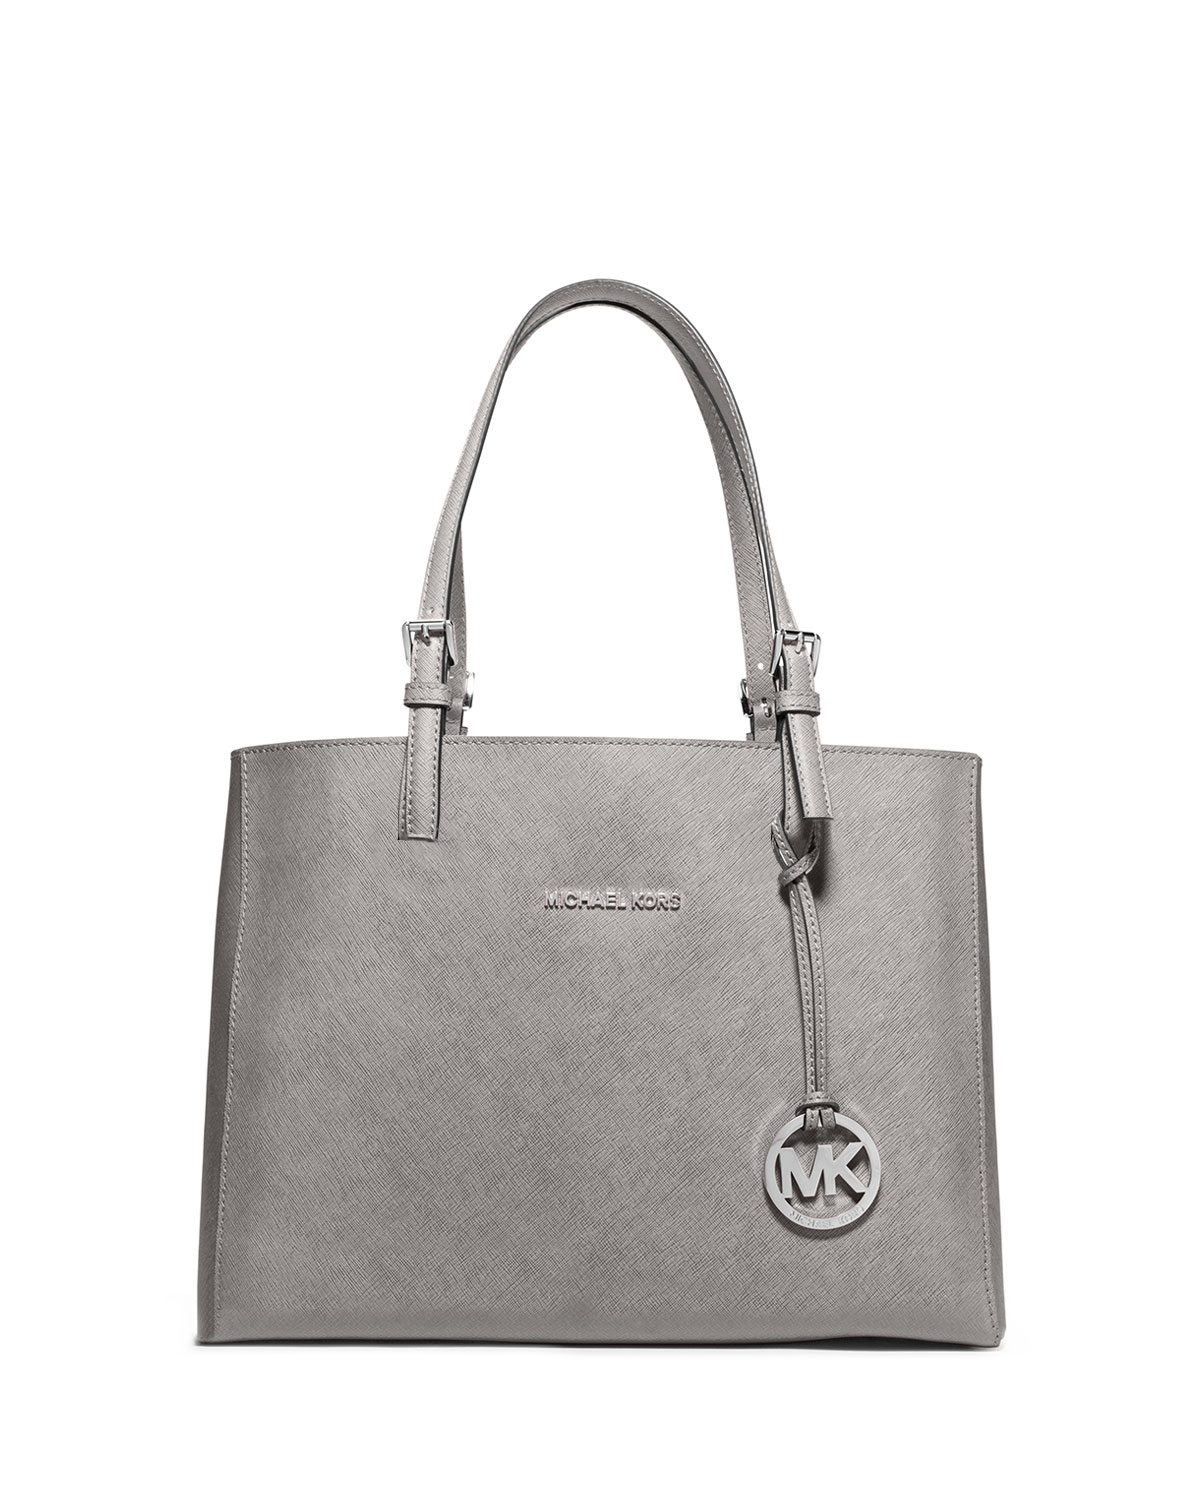 af62d63a72a0b2 Michael Kors Jet Set Purse White - Best Purse Image Ccdbb.Org